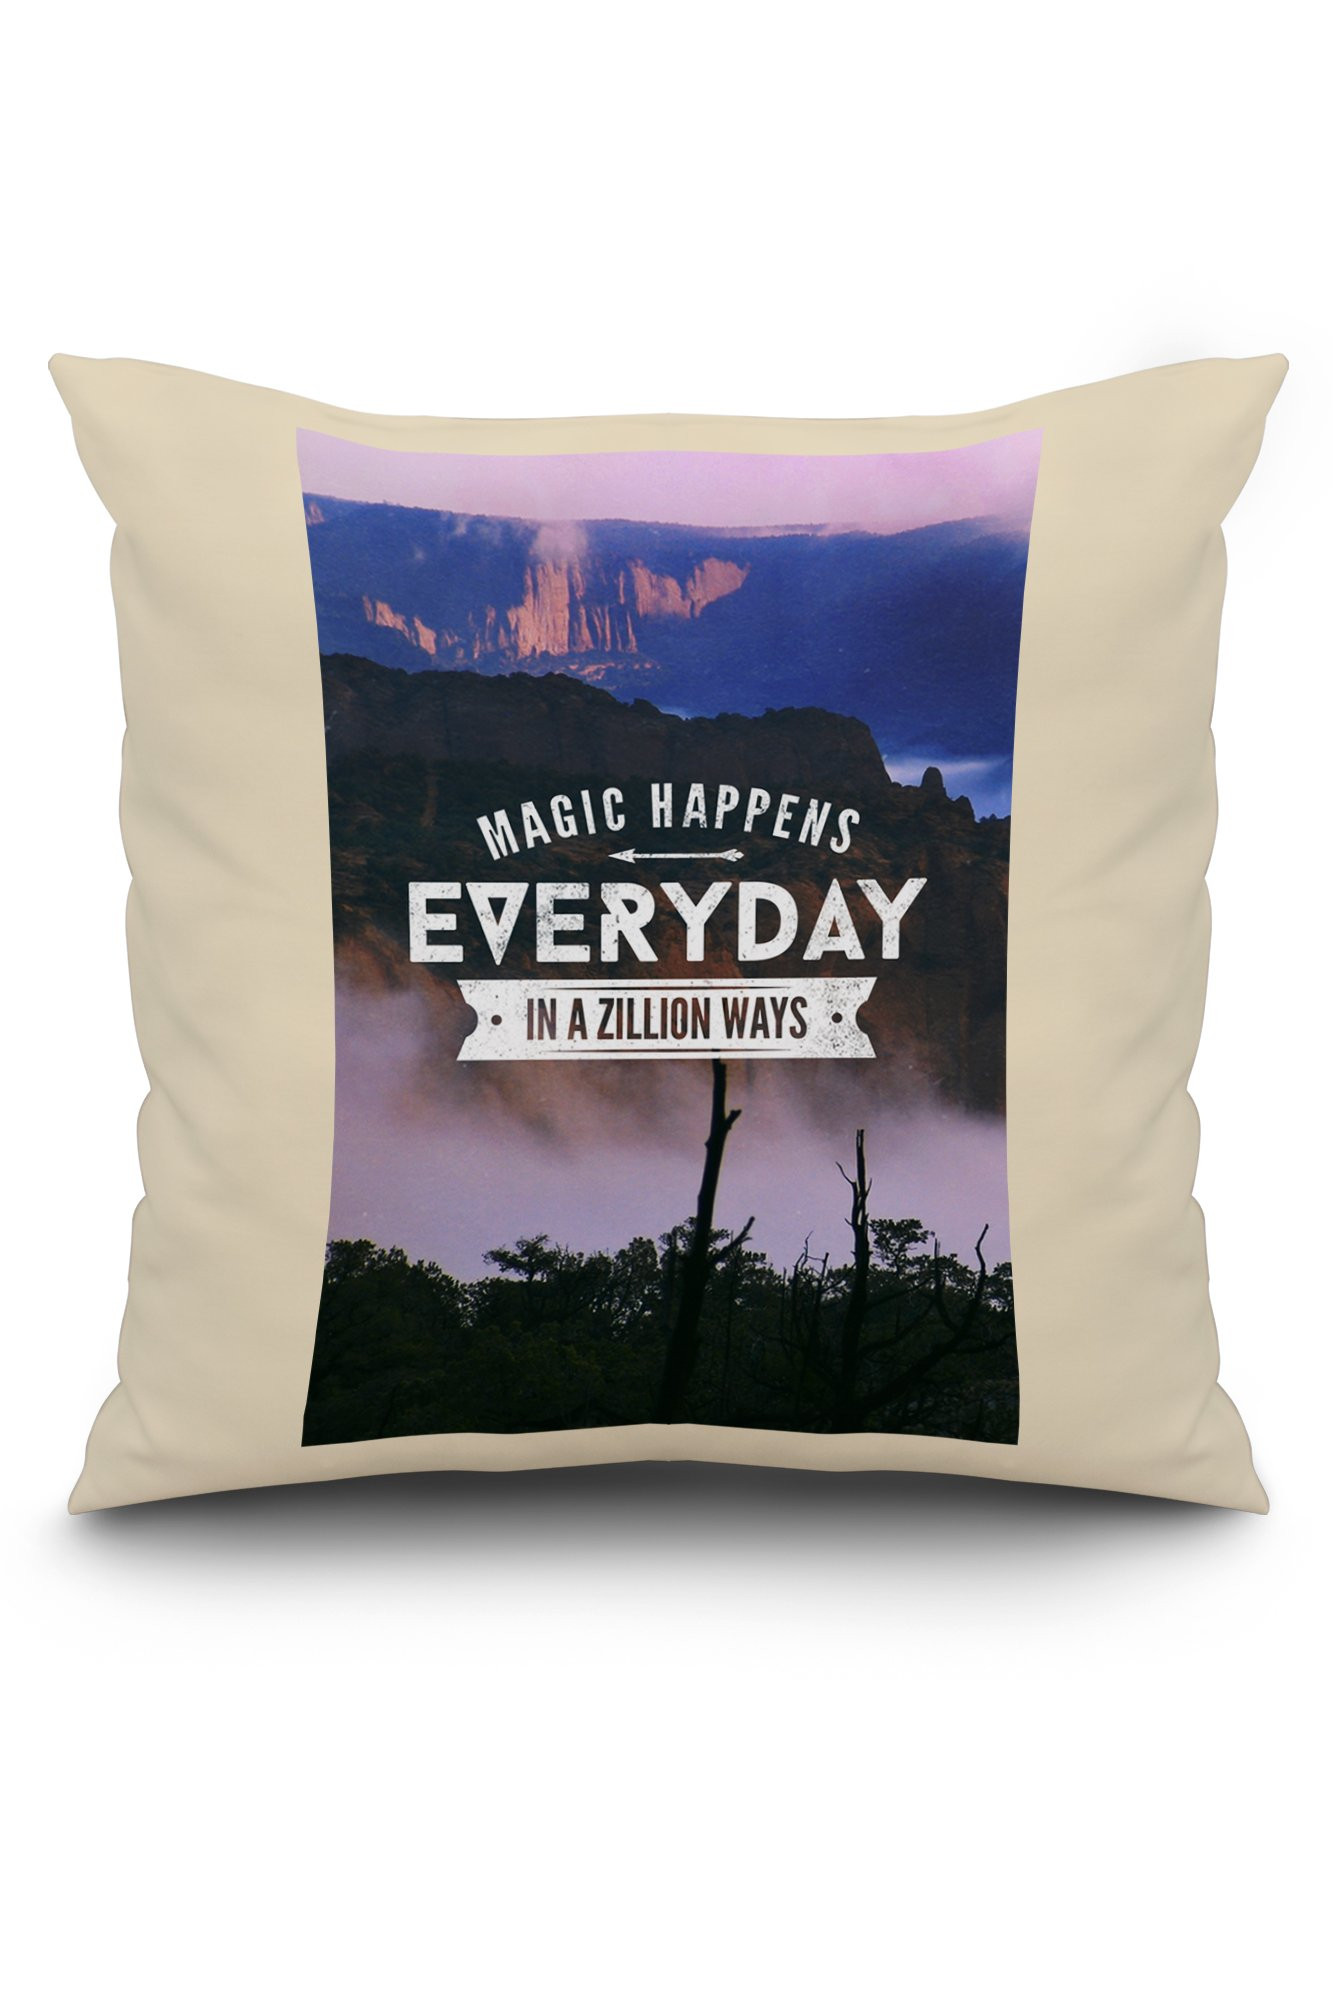 Magic Happens Everyday in a Zillion Ways (20x20 Spun Polyester Pillow, White Border)